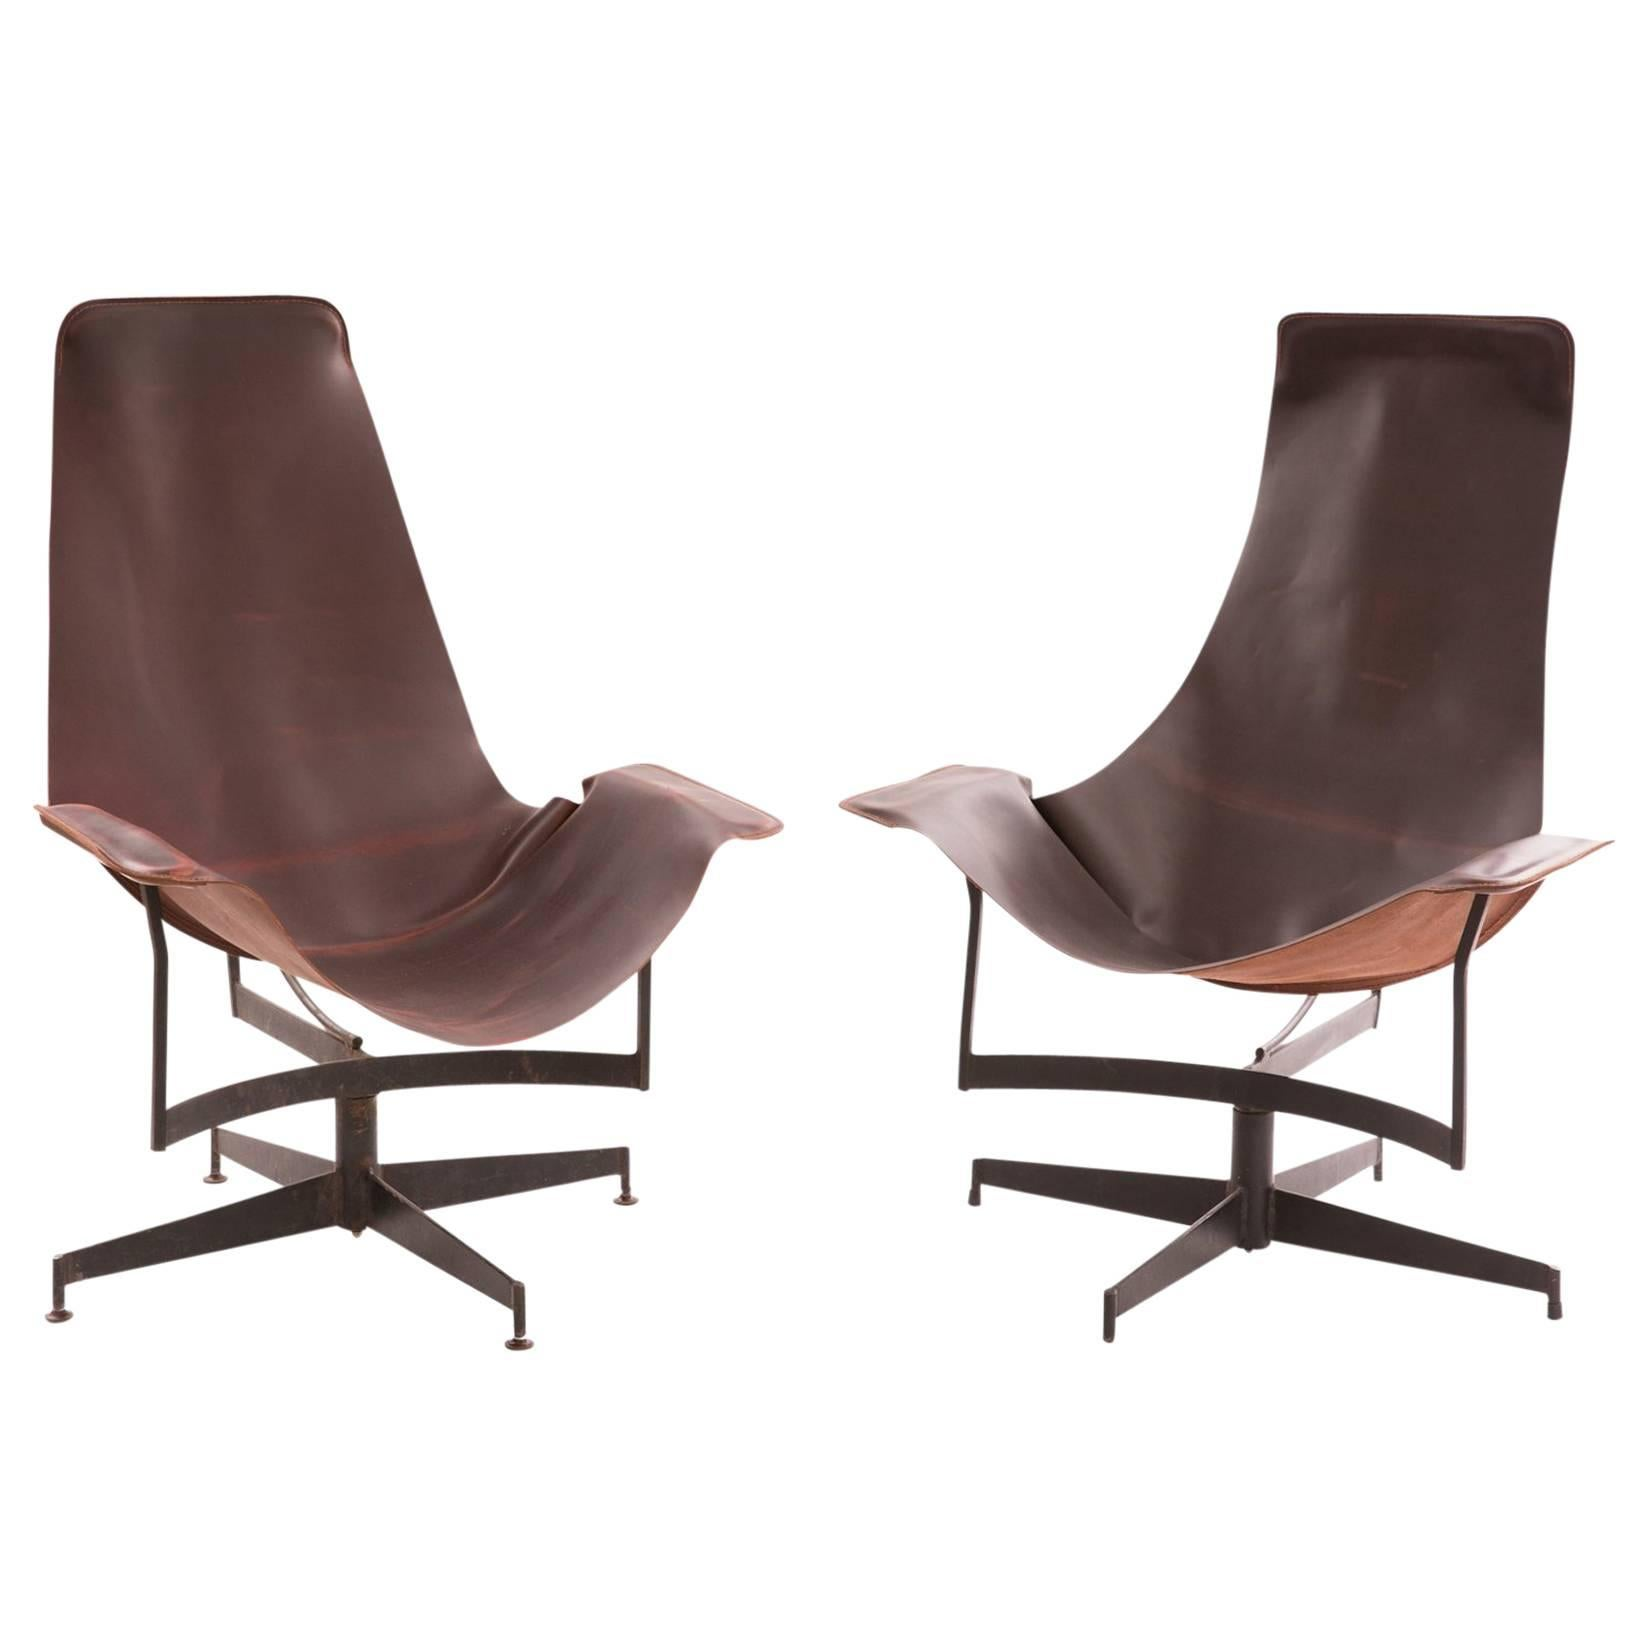 sling chairs for sale folding lounge chair outdoor william katavolos leathercrafter leather and iron